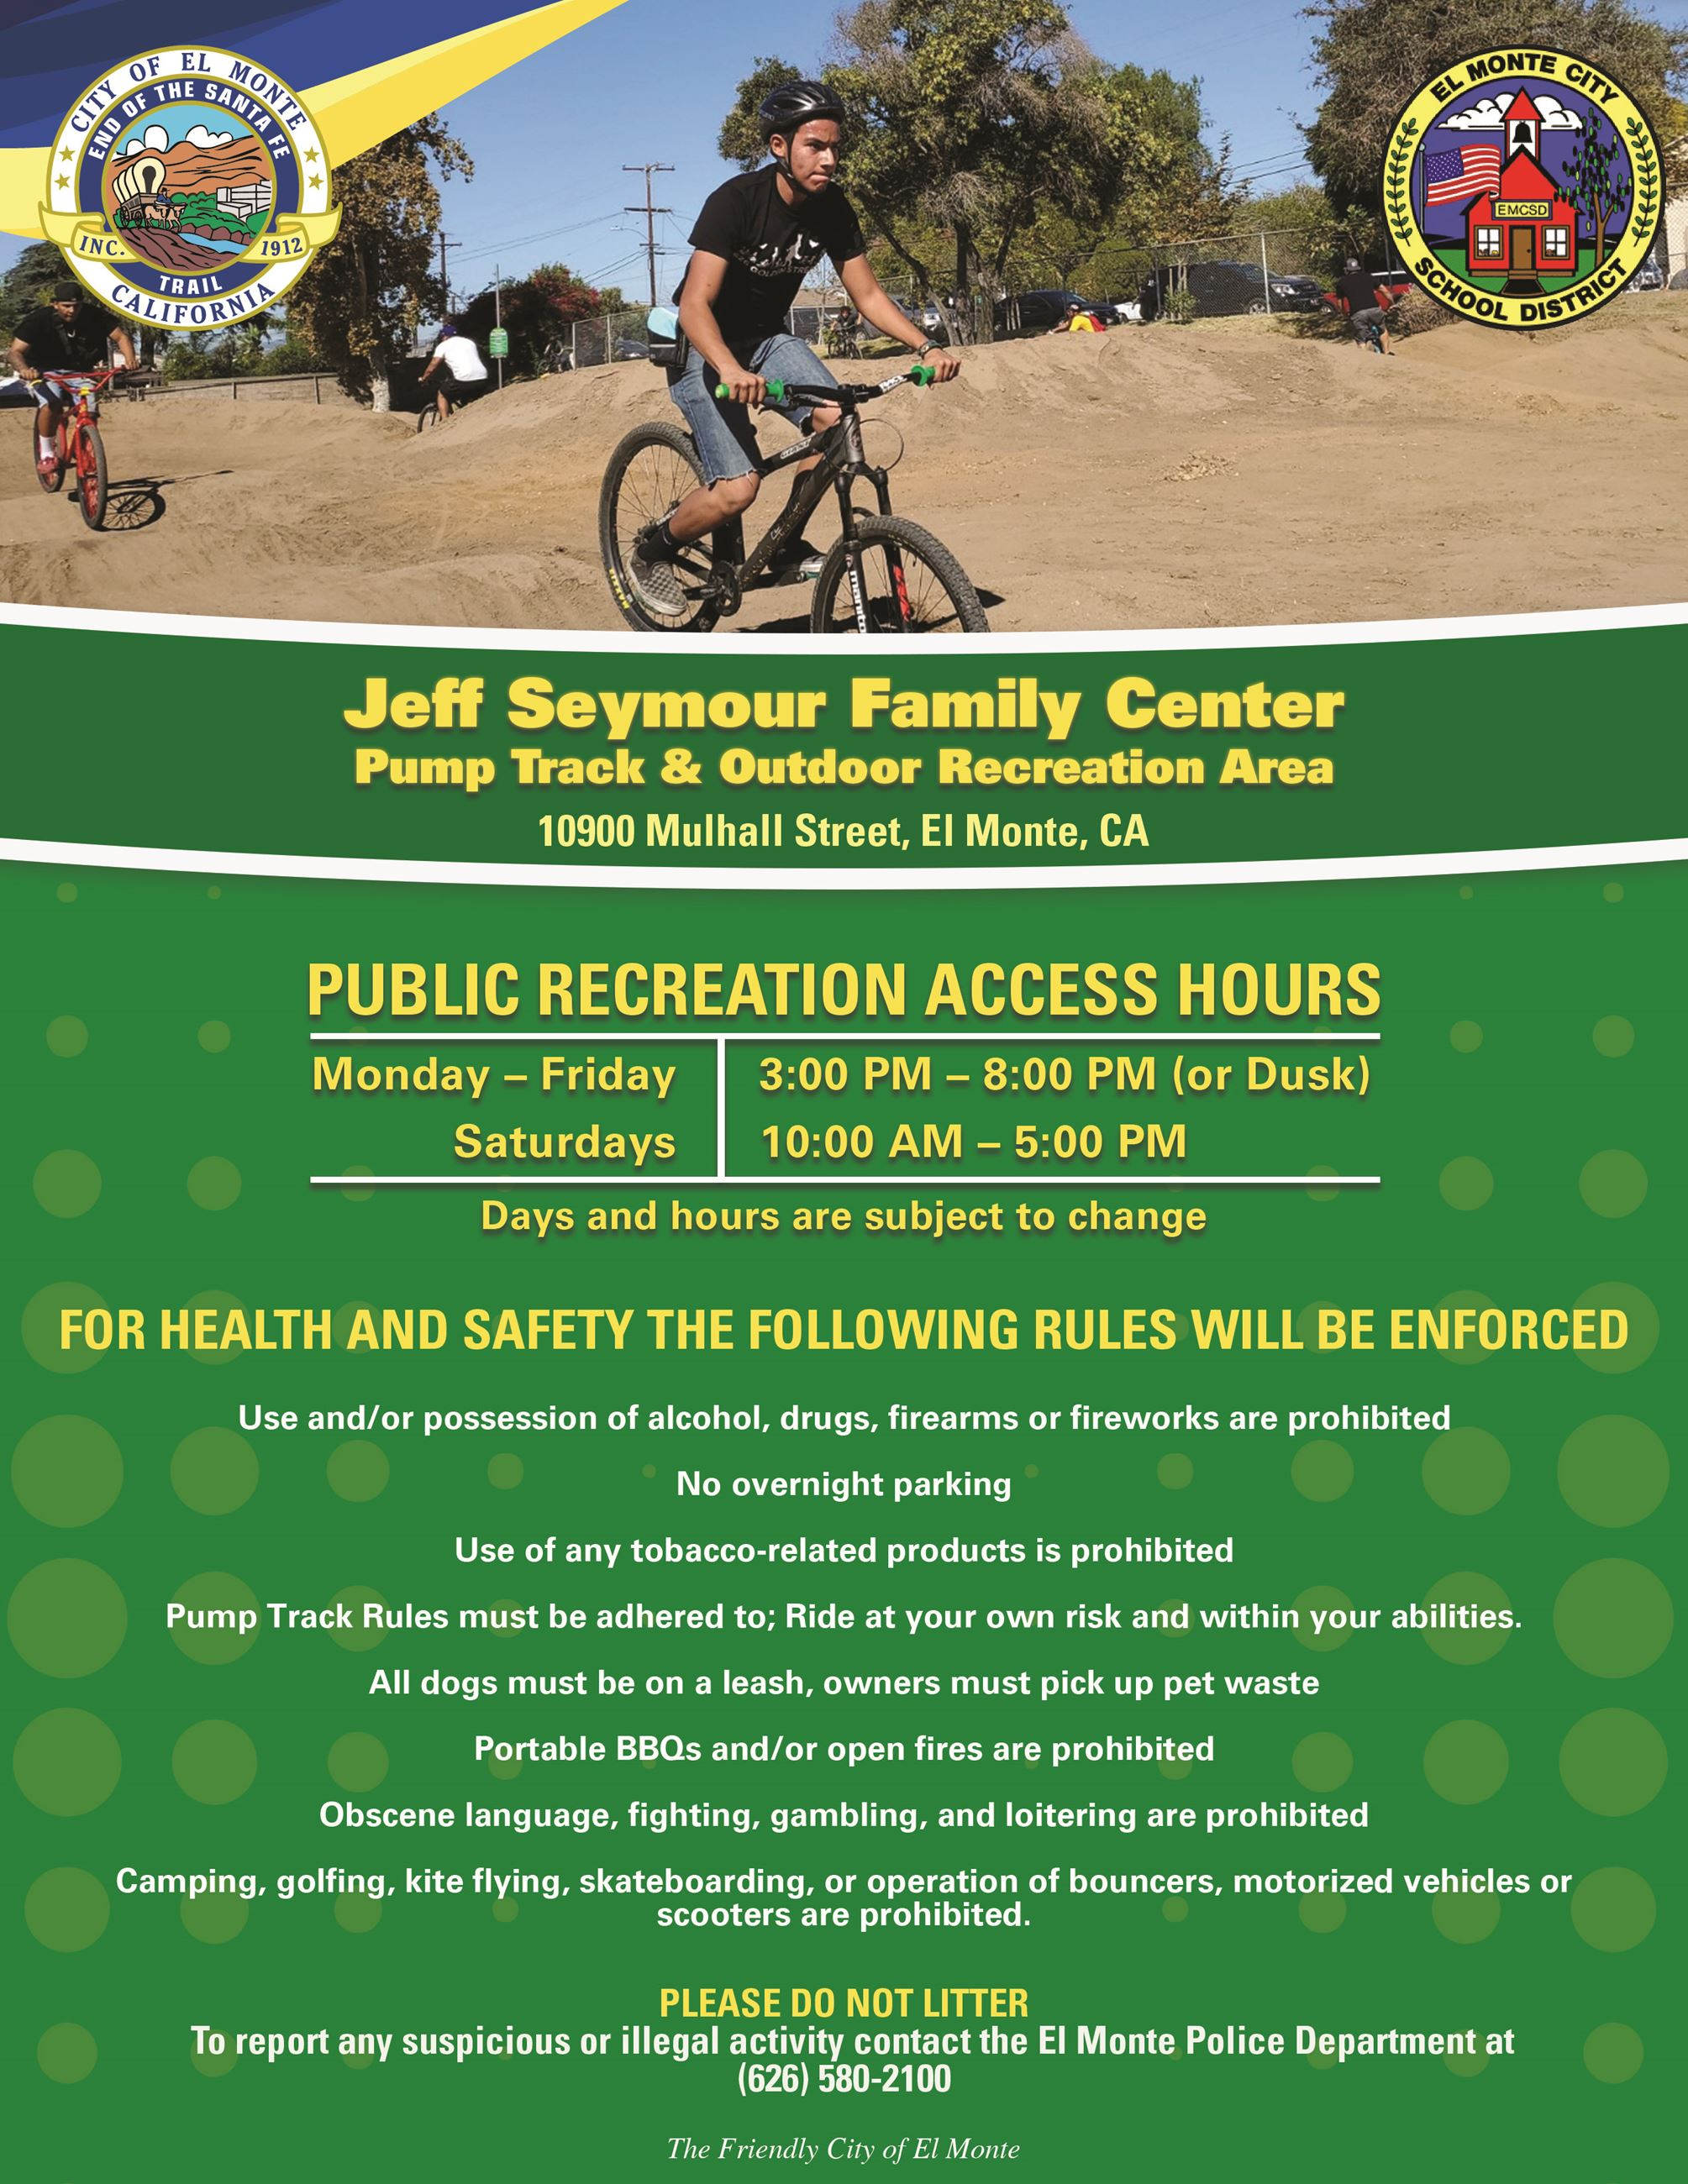 Jeff_Seymour_Family_Center_112119_Flyer E